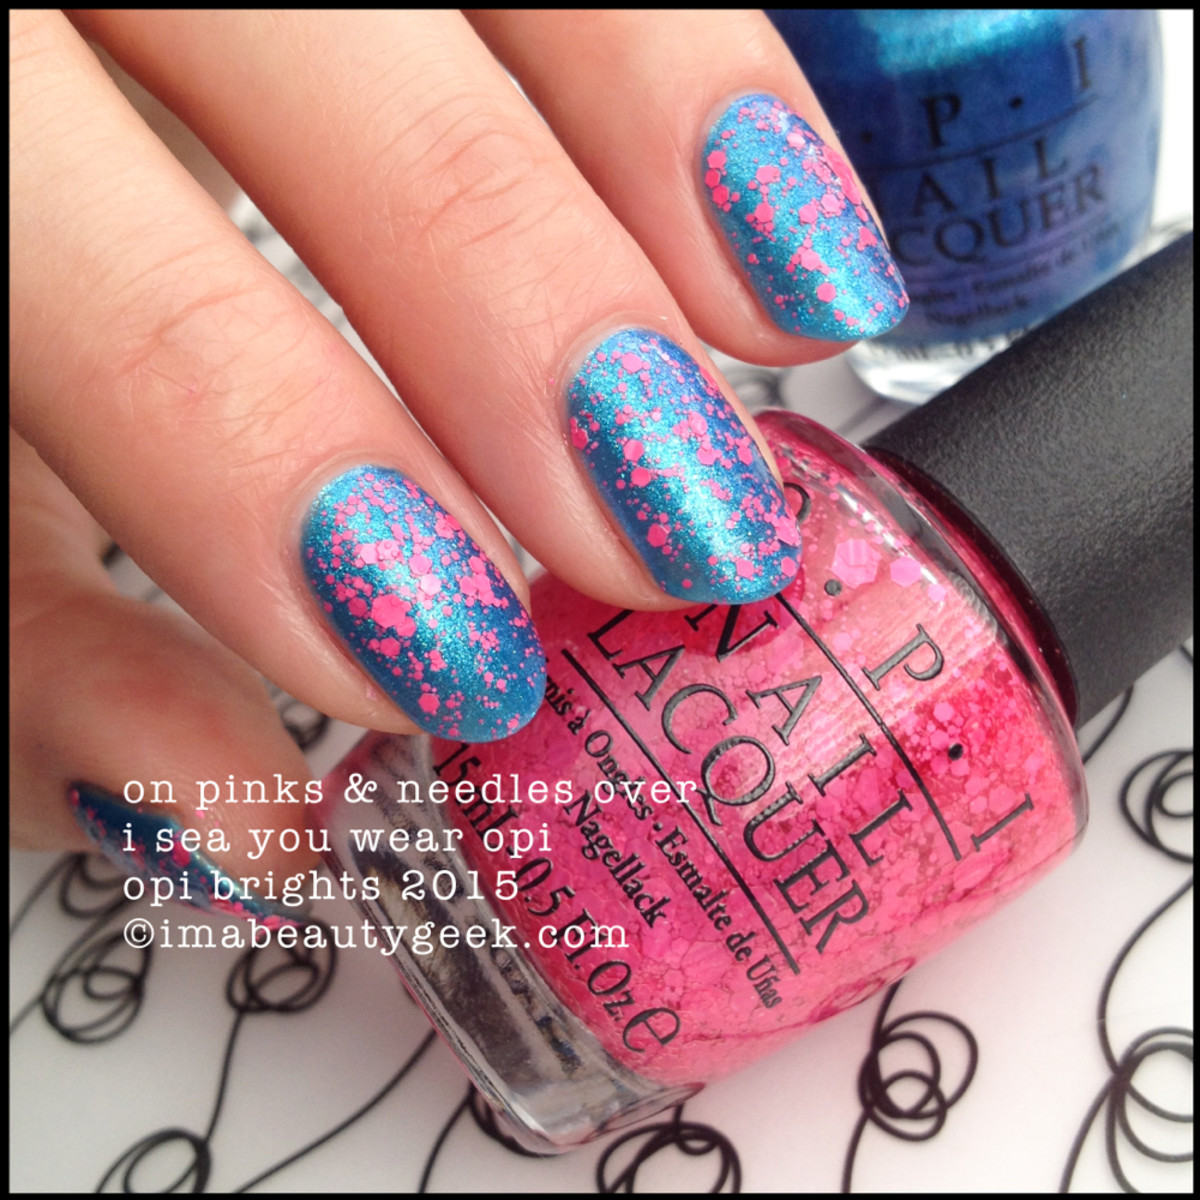 OPI Brights 2015_OPI On Pinks & Needles over I Sea You Wear OPI